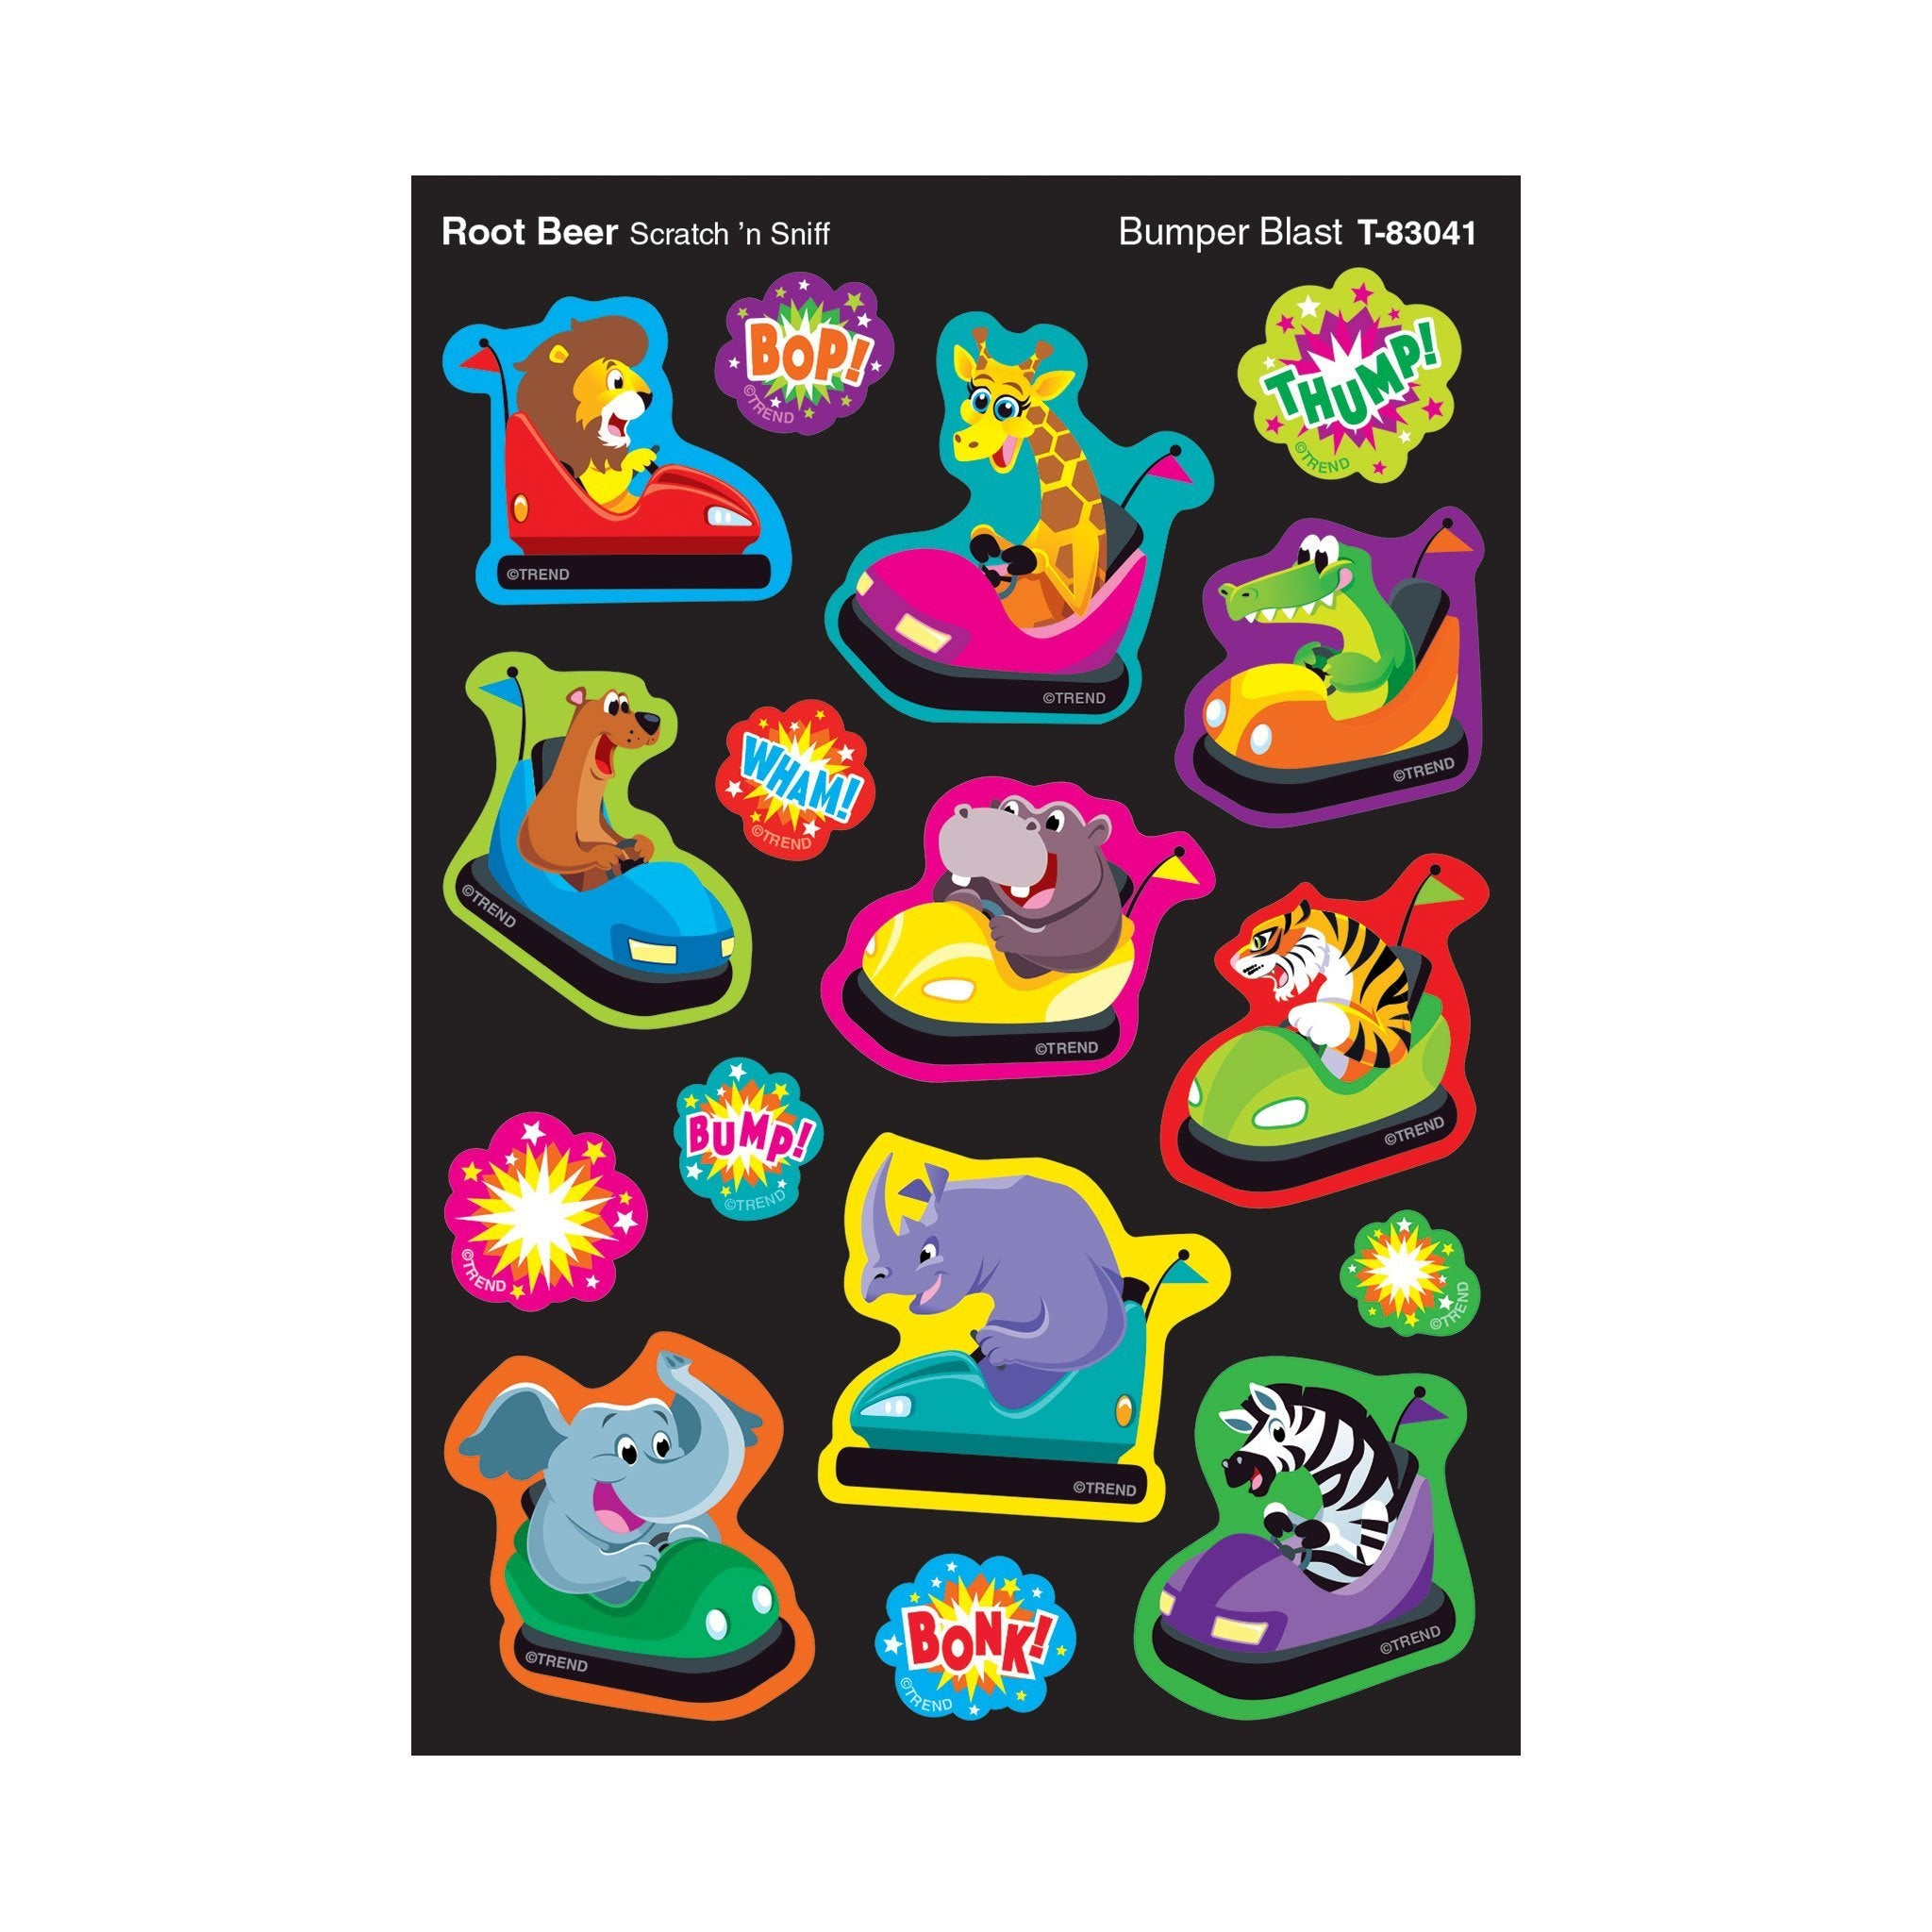 Bumper Blast/Root Beer Mixed Shapes Stinky Stickers®